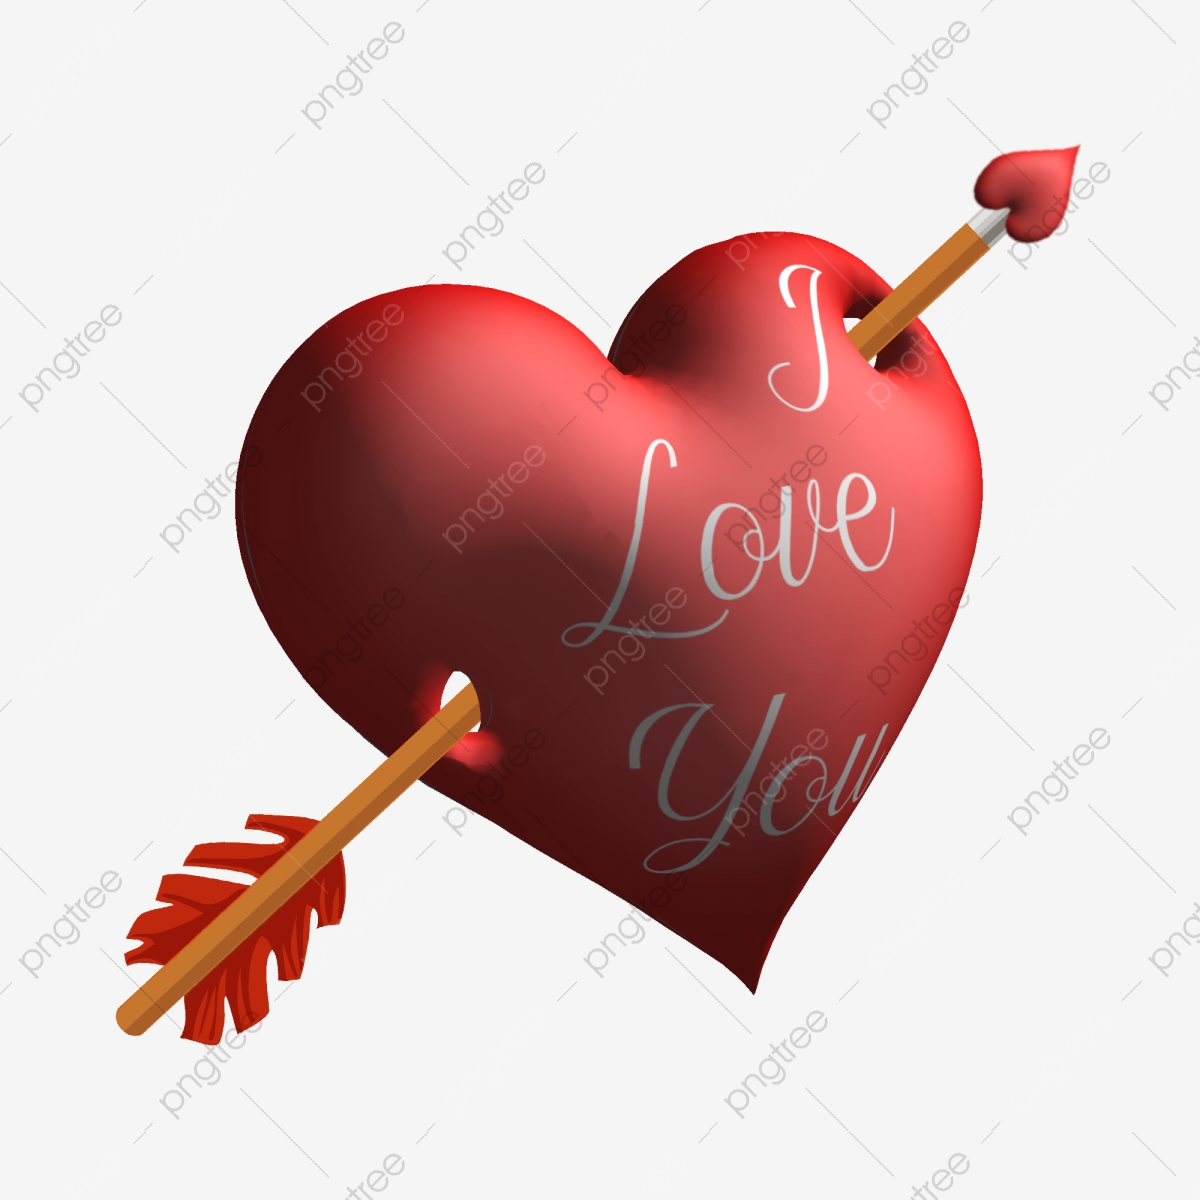 Heart Arrows Png Vector Psd And Clipart With Transparent Background For Free Download Pngtree